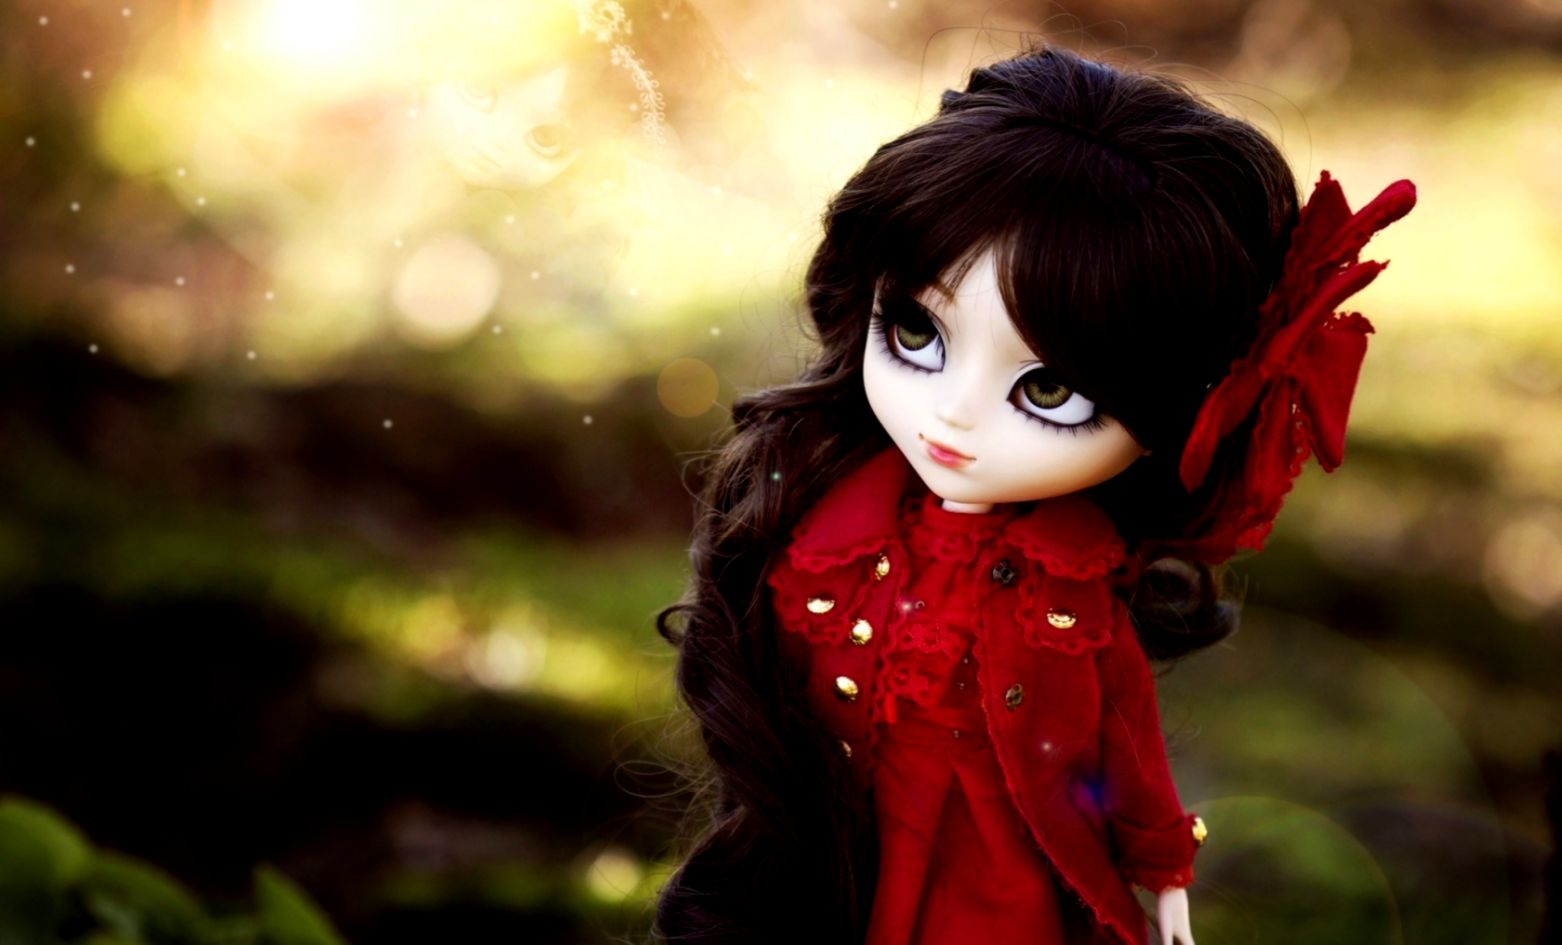 Brunette Girl Doll Hd Wallpaper | Wallpapers Mobile